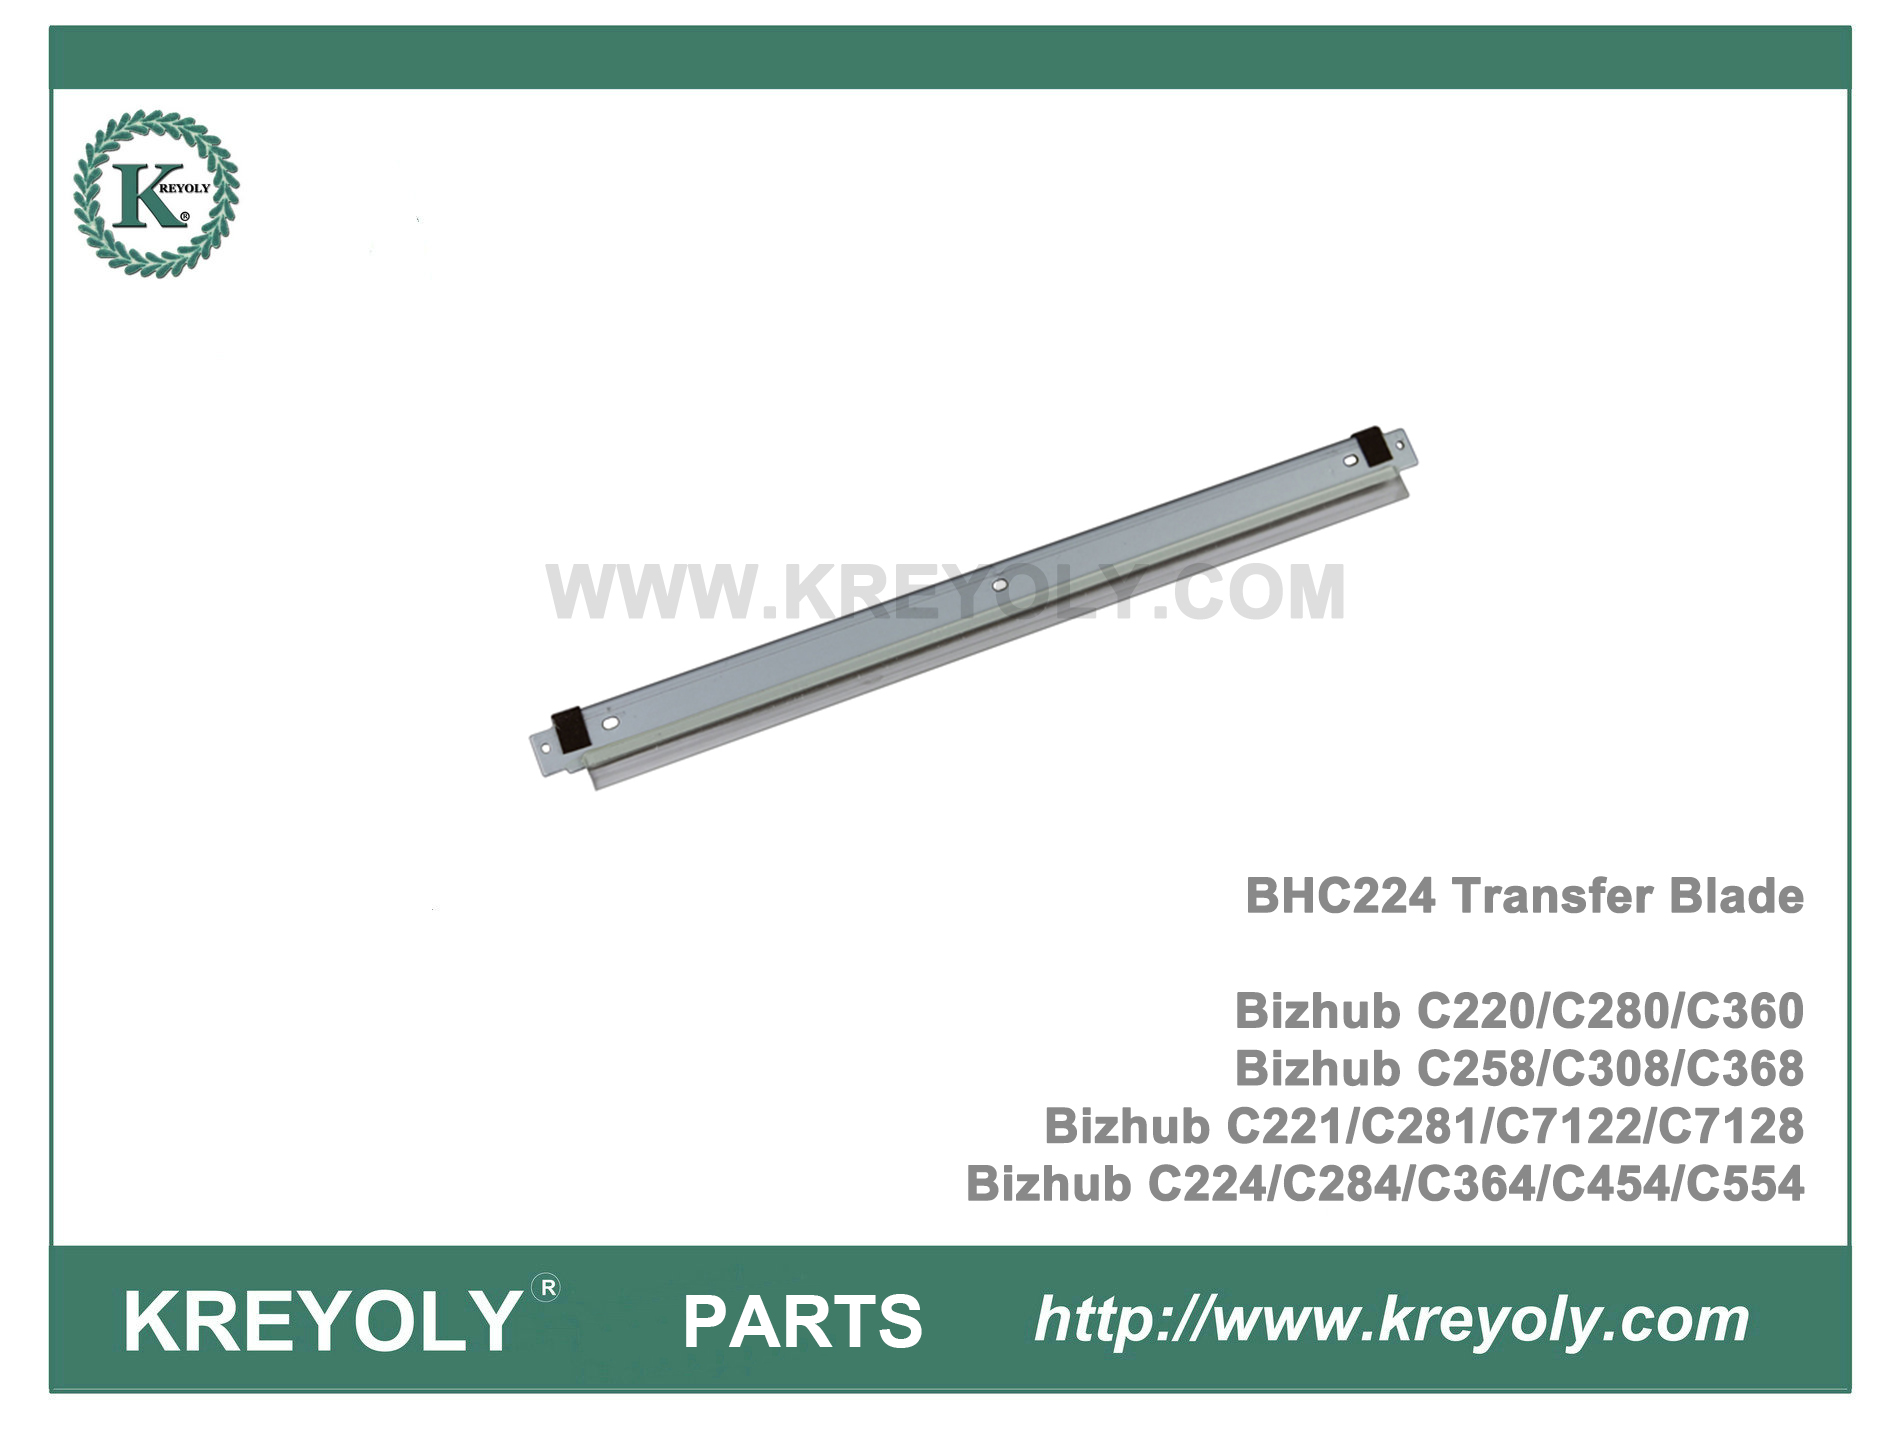 BHC224 Transfer Belt Cleaning Blade for Konica Minolta Bizhub C224 C454 C221 C258 C360